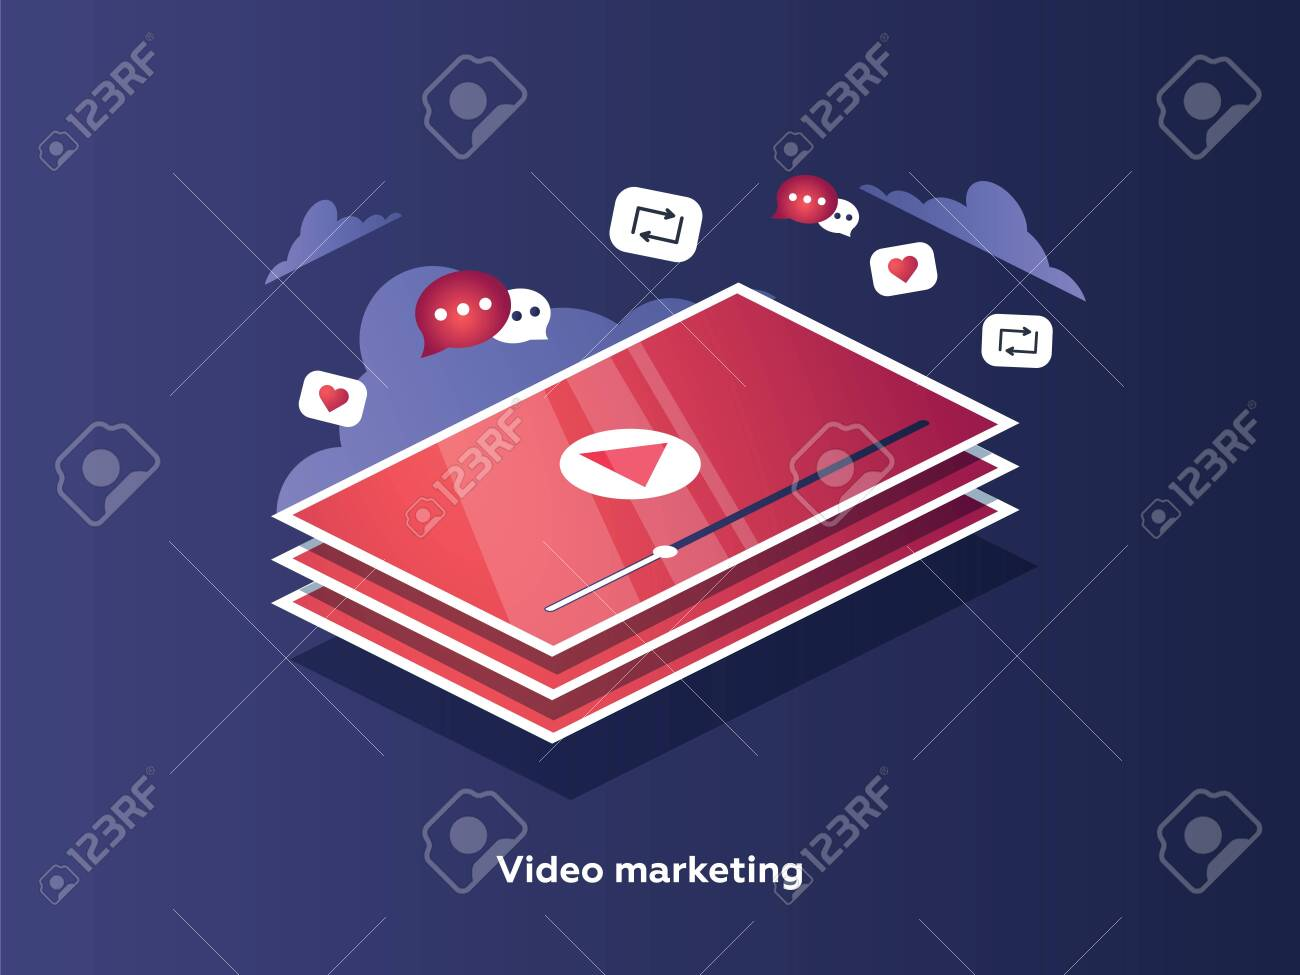 Video marketing concept. Tablet screen with an icon of video player and icons for mobile applications. - 132302552